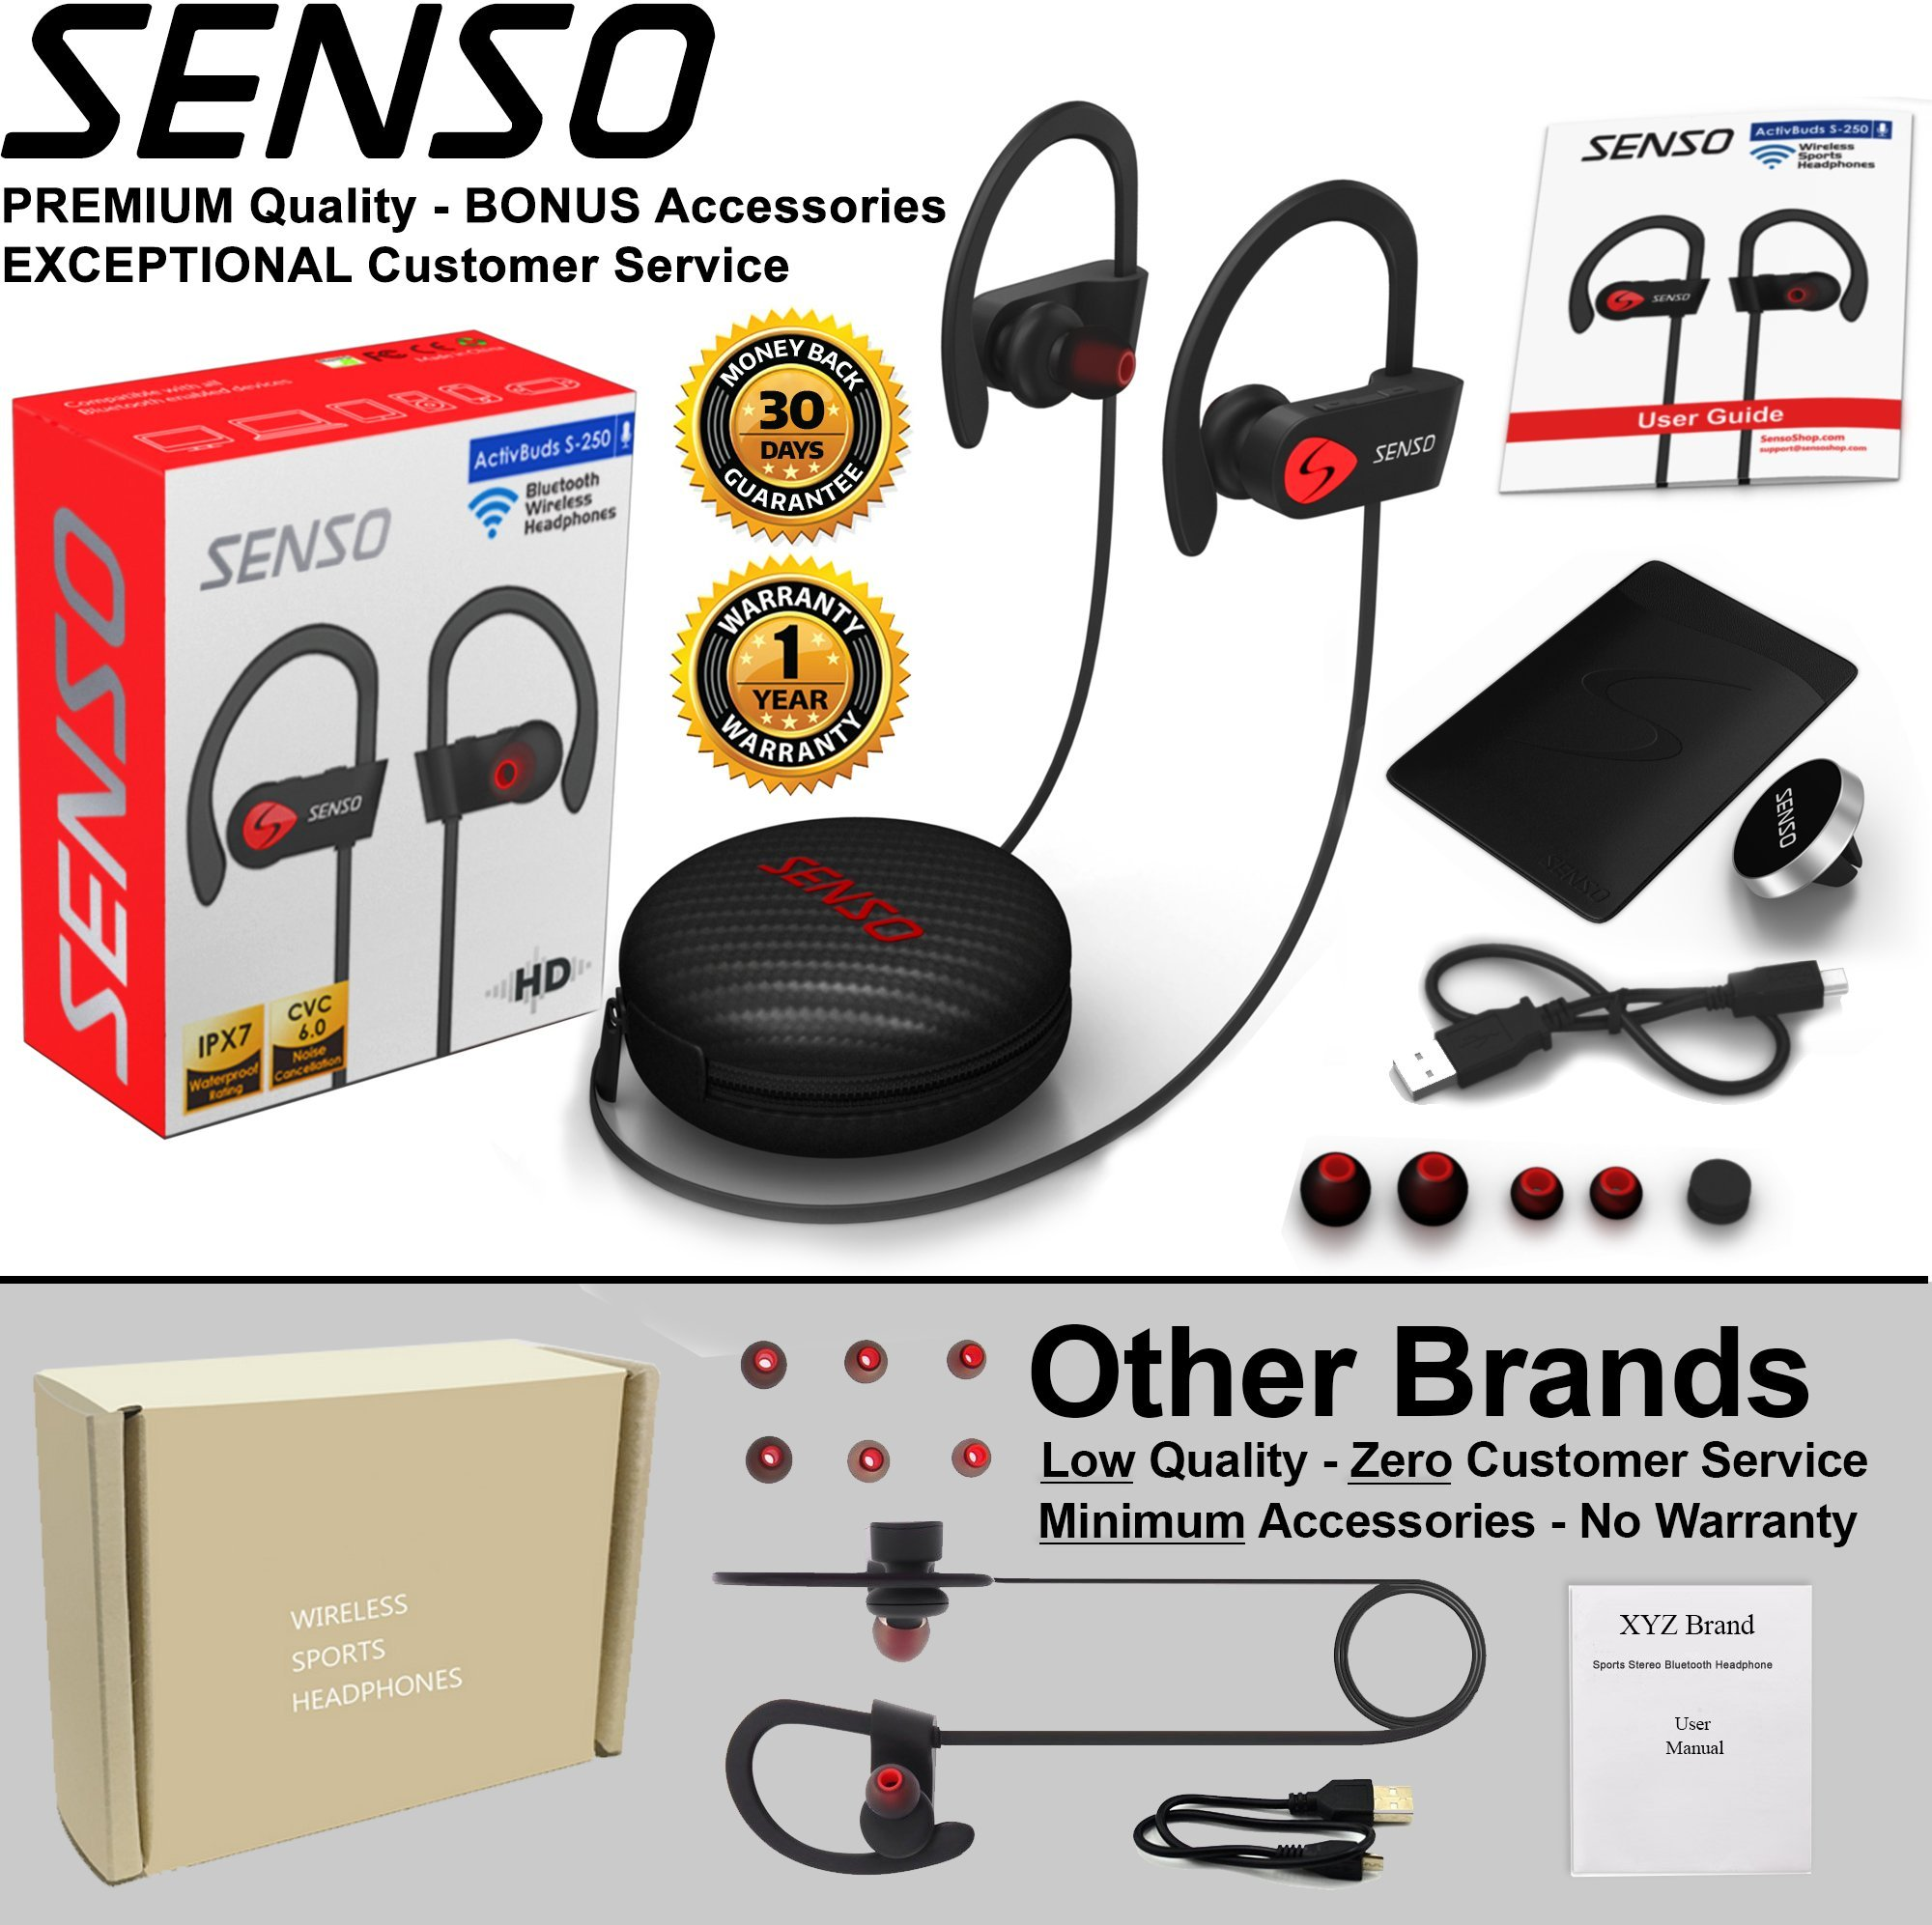 SENSO Bluetooth Headphones, Best Wireless Sports Earphones w/Mic IPX7 Waterproof HD Stereo Sweatproof Earbuds for Gym Running Workout 8 Hour Battery Noise Cancelling Headsets by Senso (Image #5)